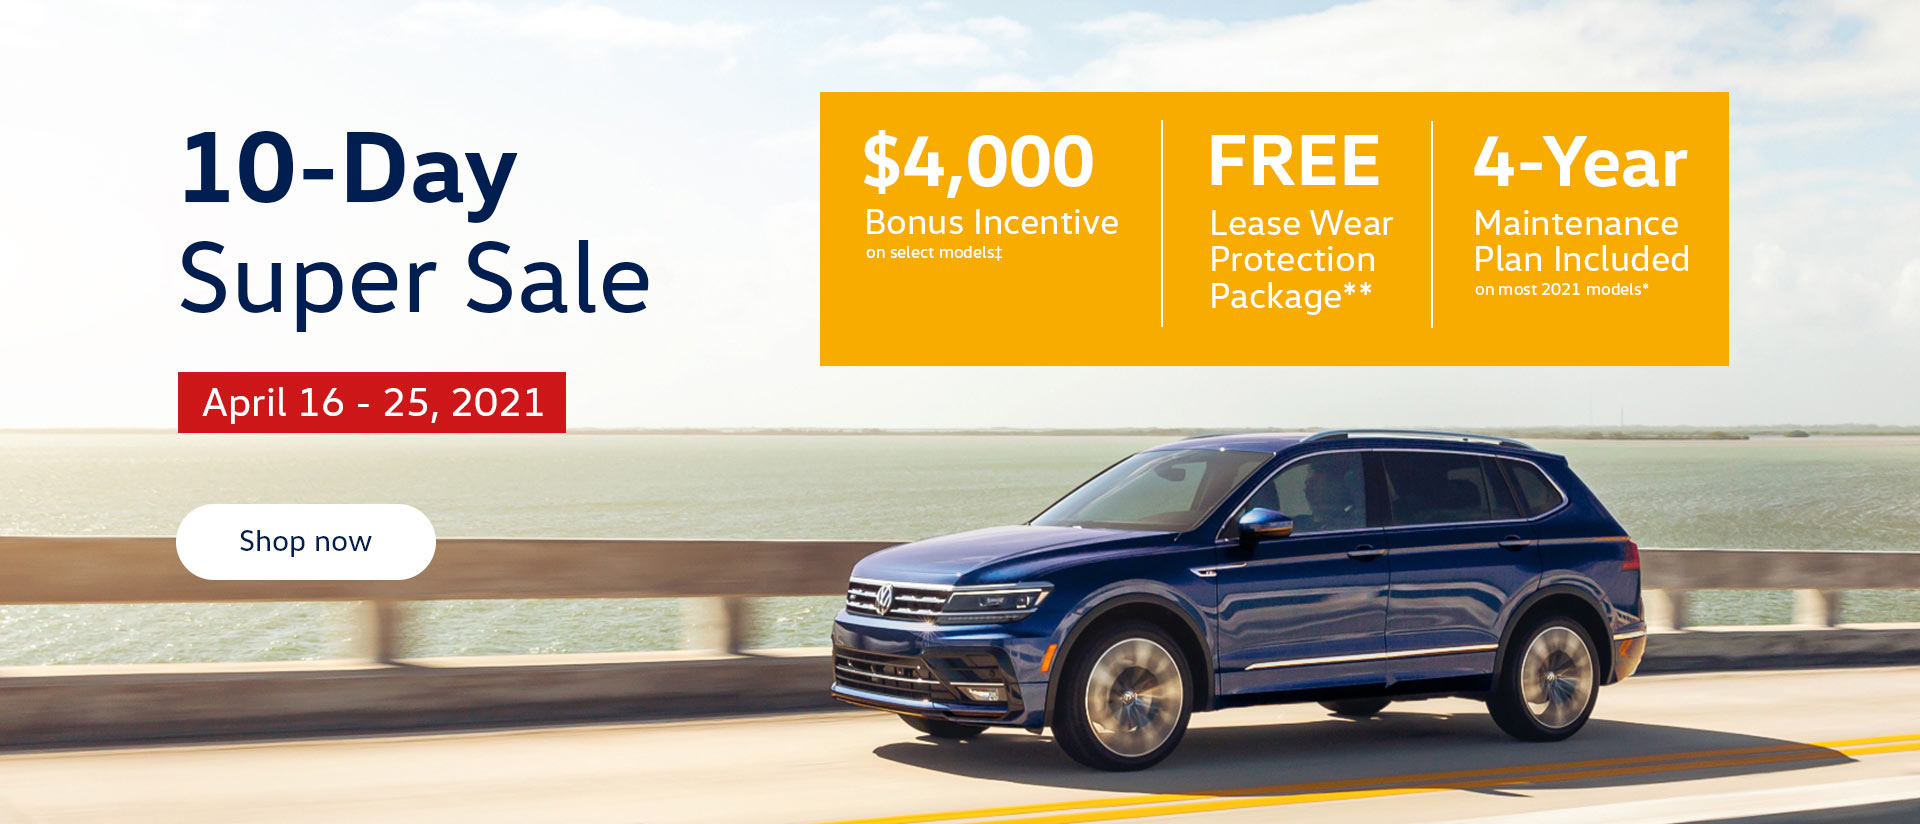 Cowell Volkswagen 10-Day Super Sale